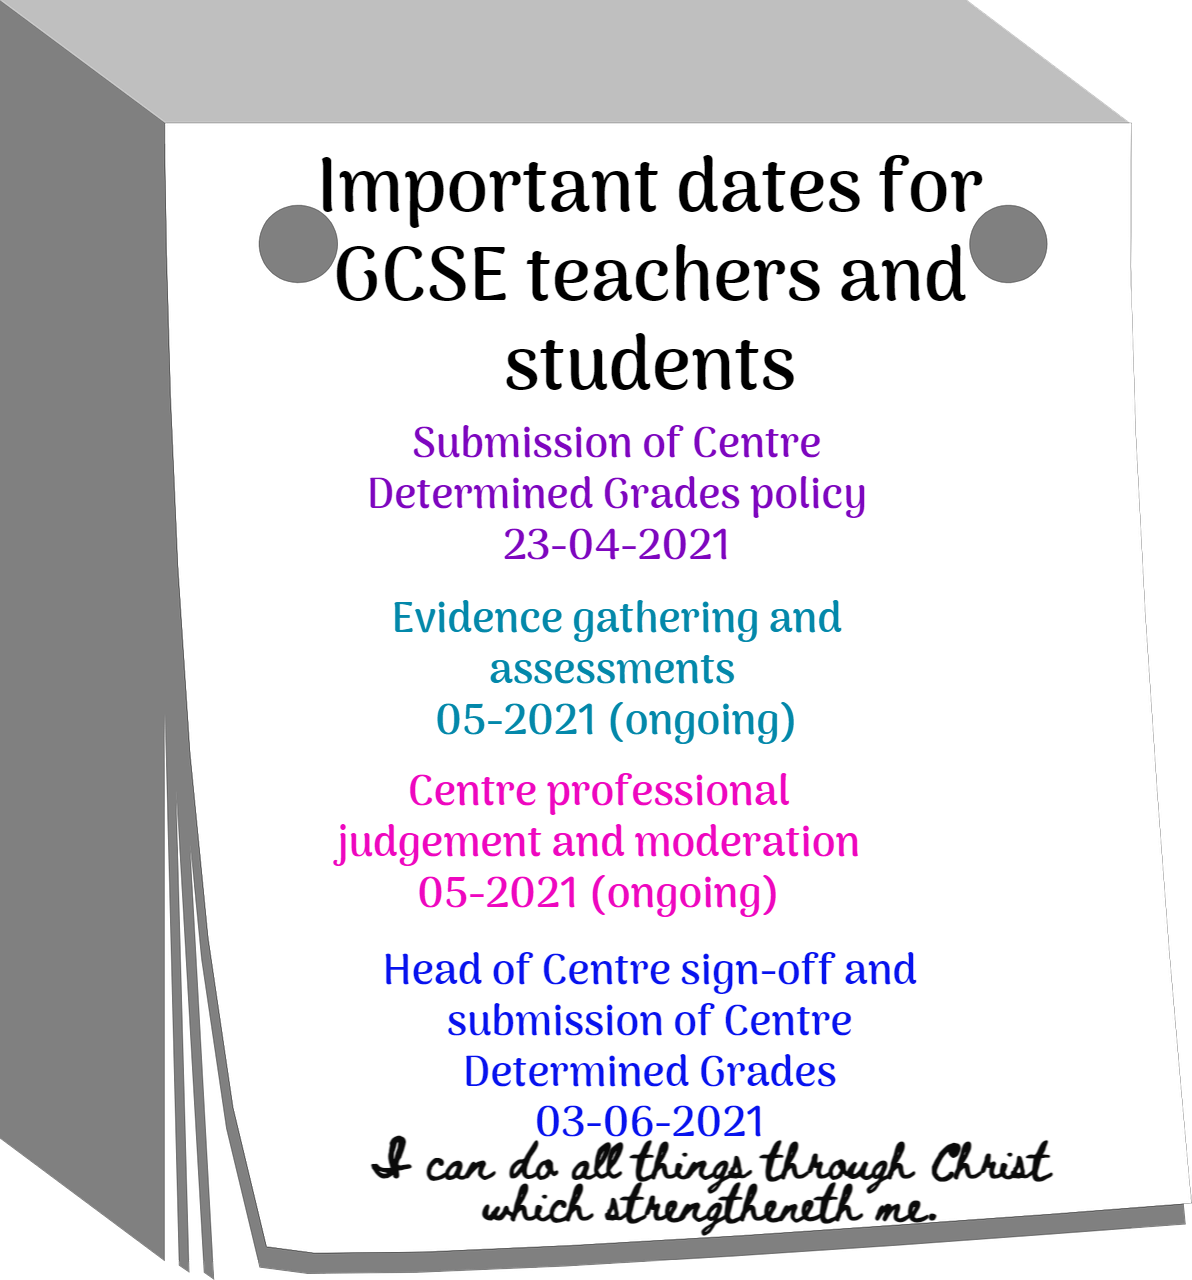 Important dates for GCSE